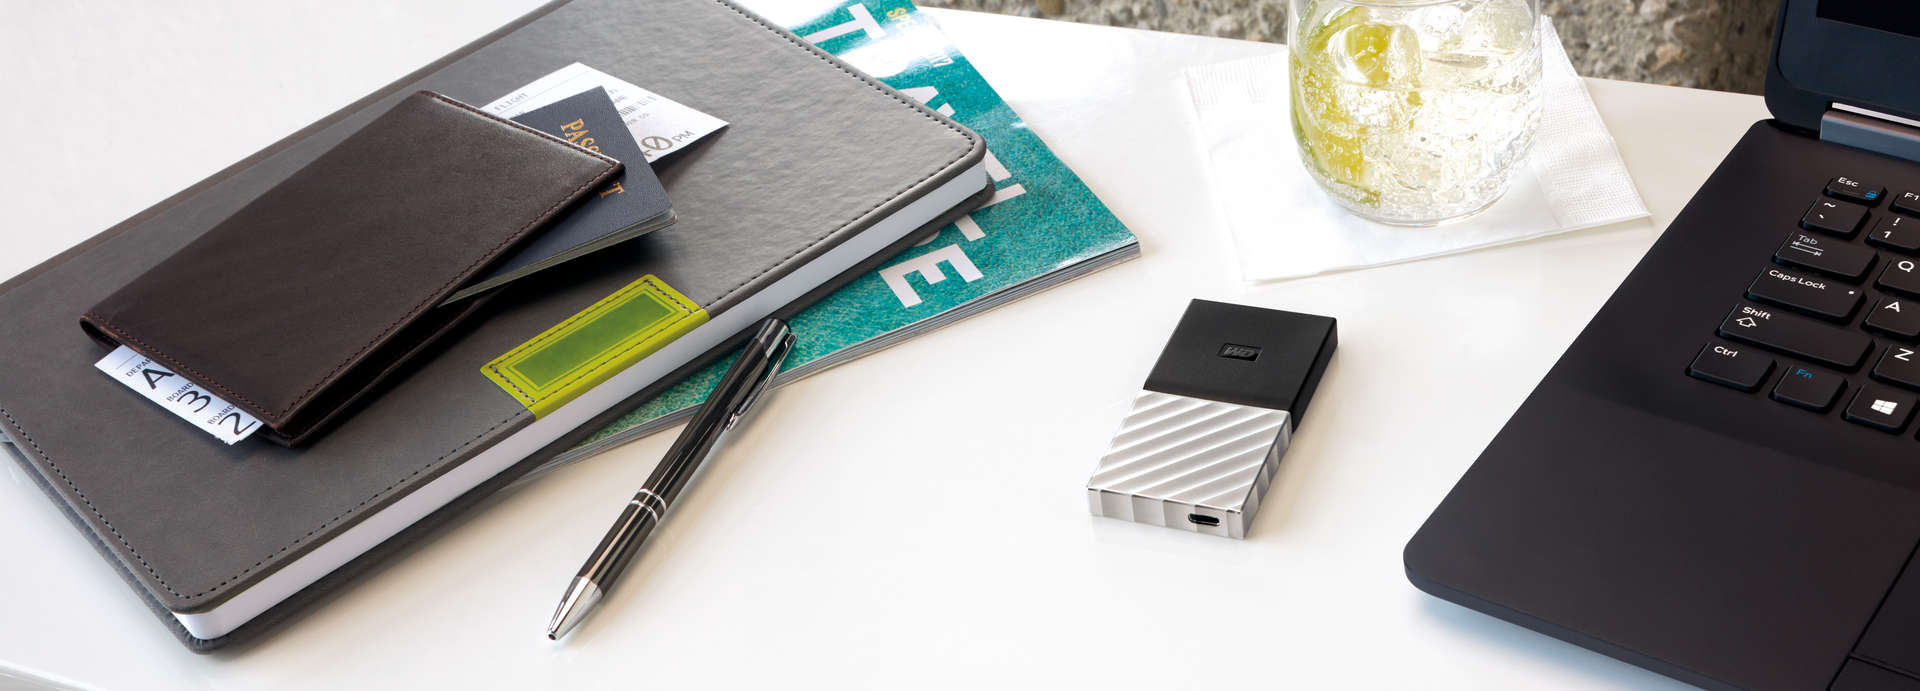 WD Introduces My Passport SSD Portable Drive